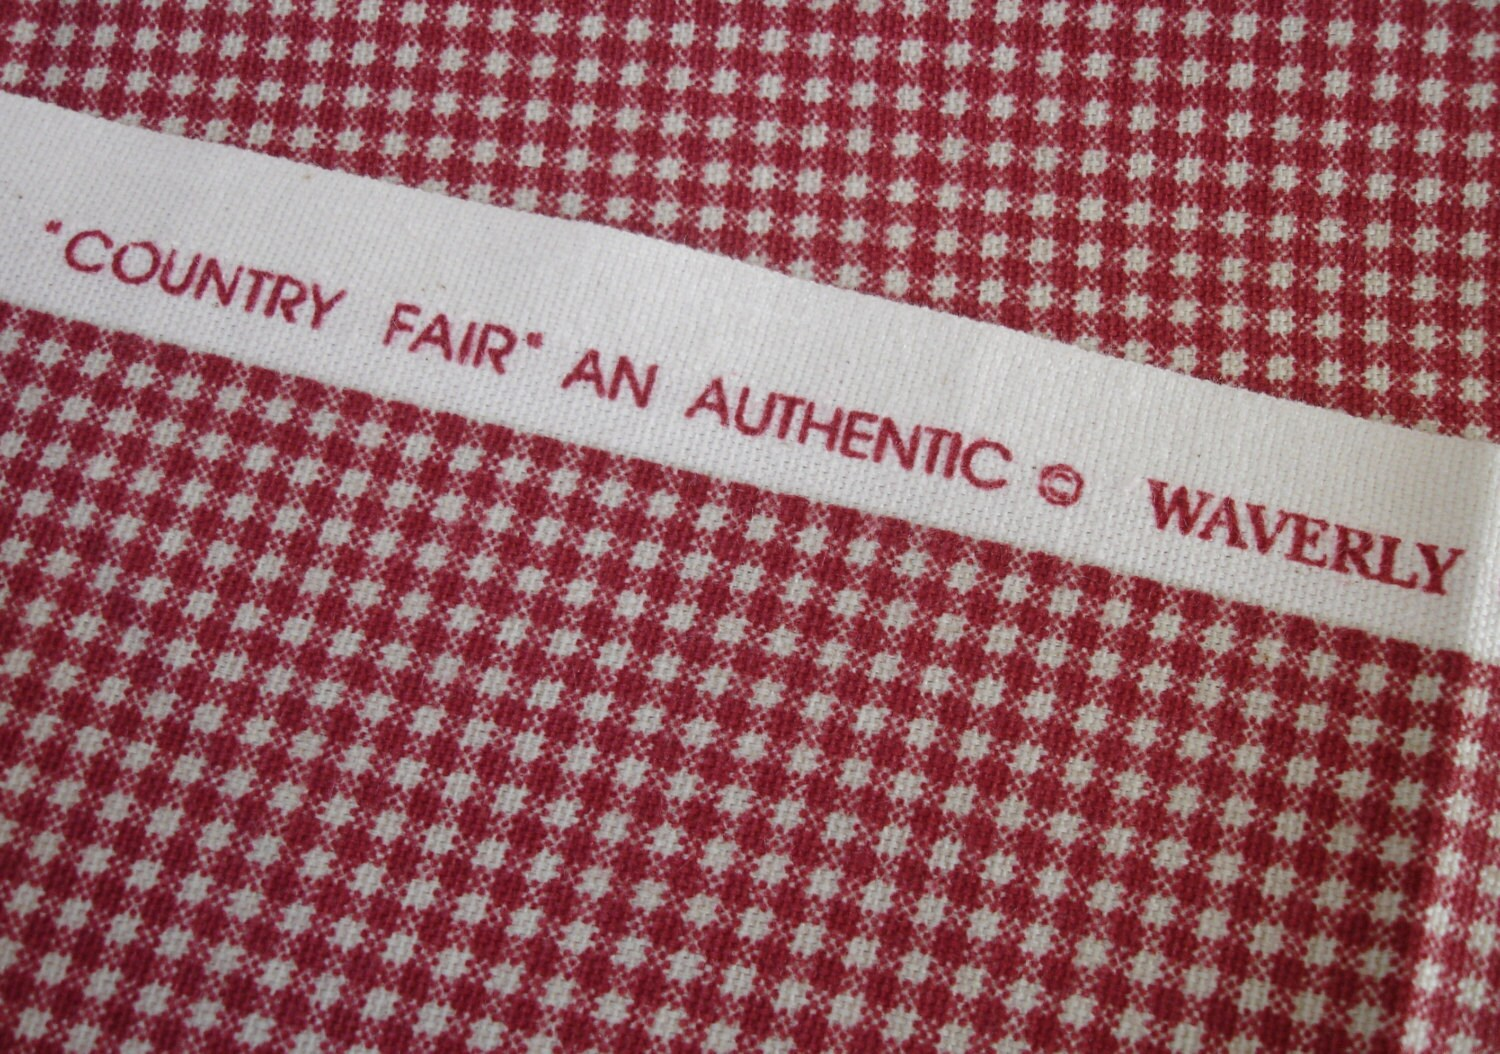 Waverly Fabric Country Fair Red Crimson Check 1 Yard Of Fabric